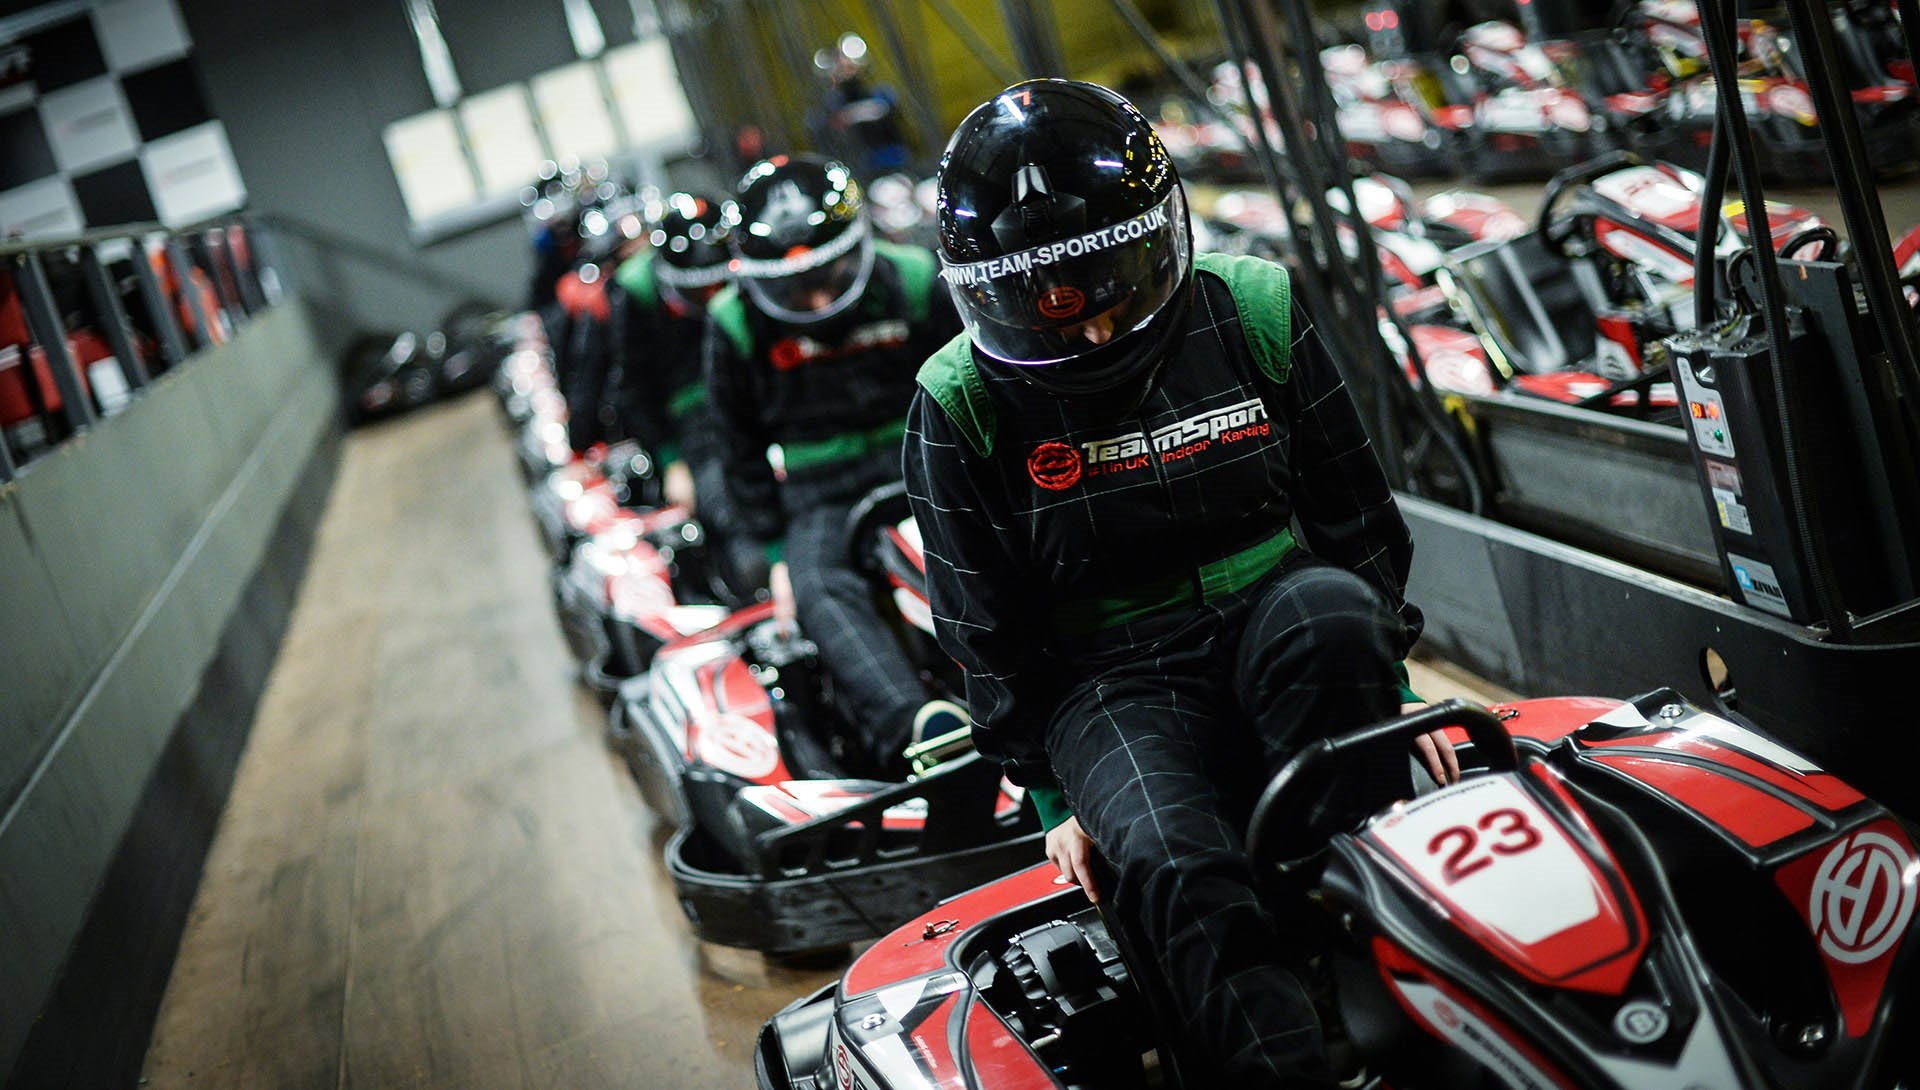 TeamSport_Corporate_Mini_Grand_Prix_GP_Event_Main_Header_1920x1090-min.jpg